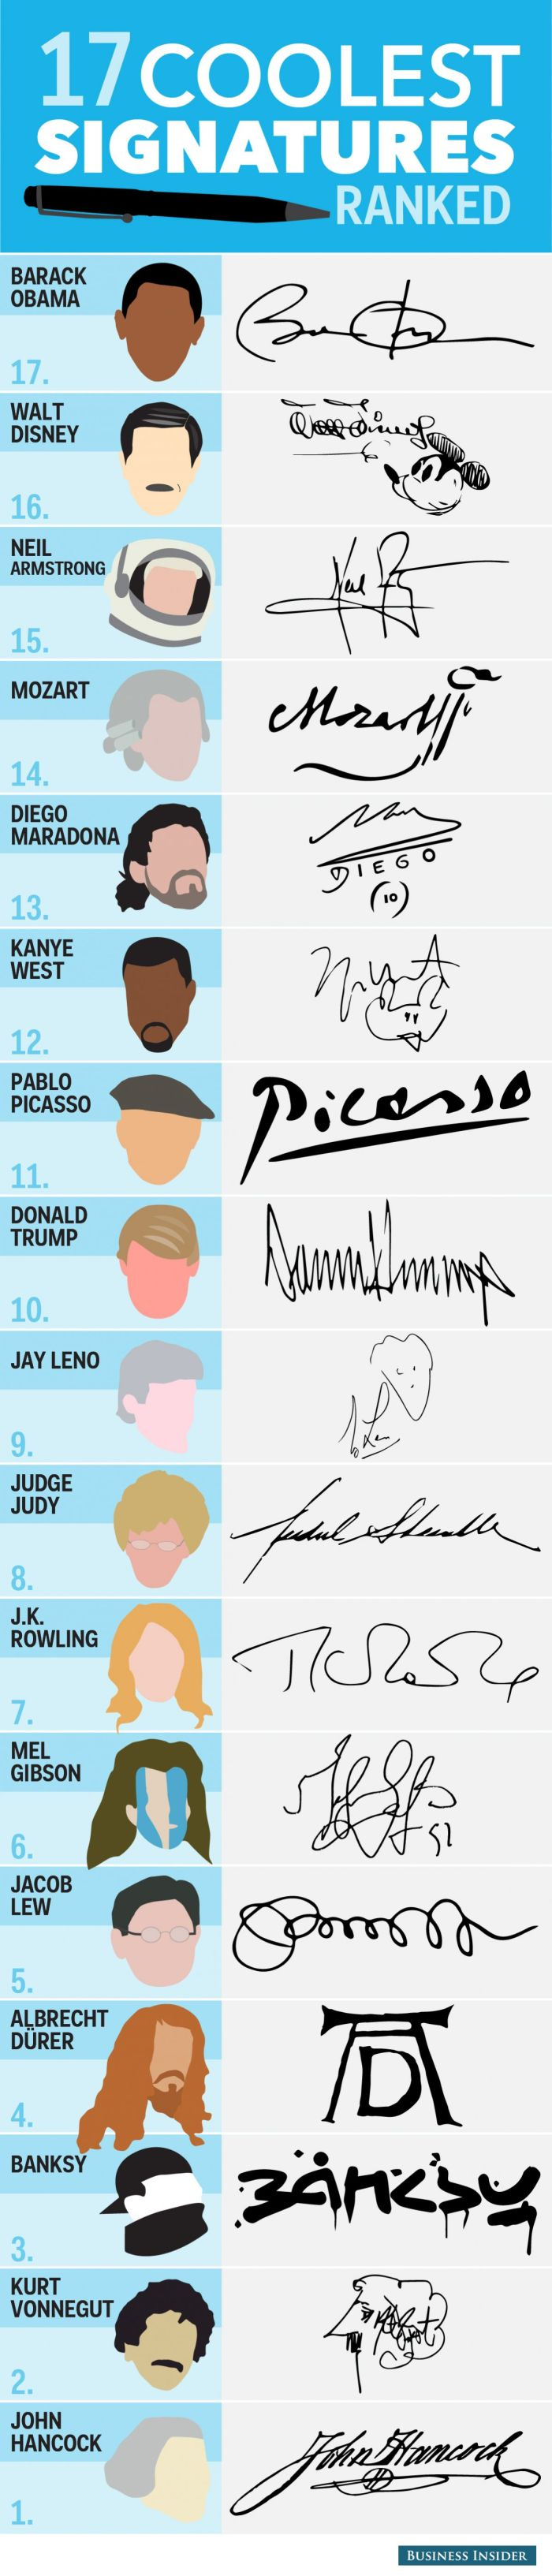 The Coolest Celebrity Signatures Of All Time